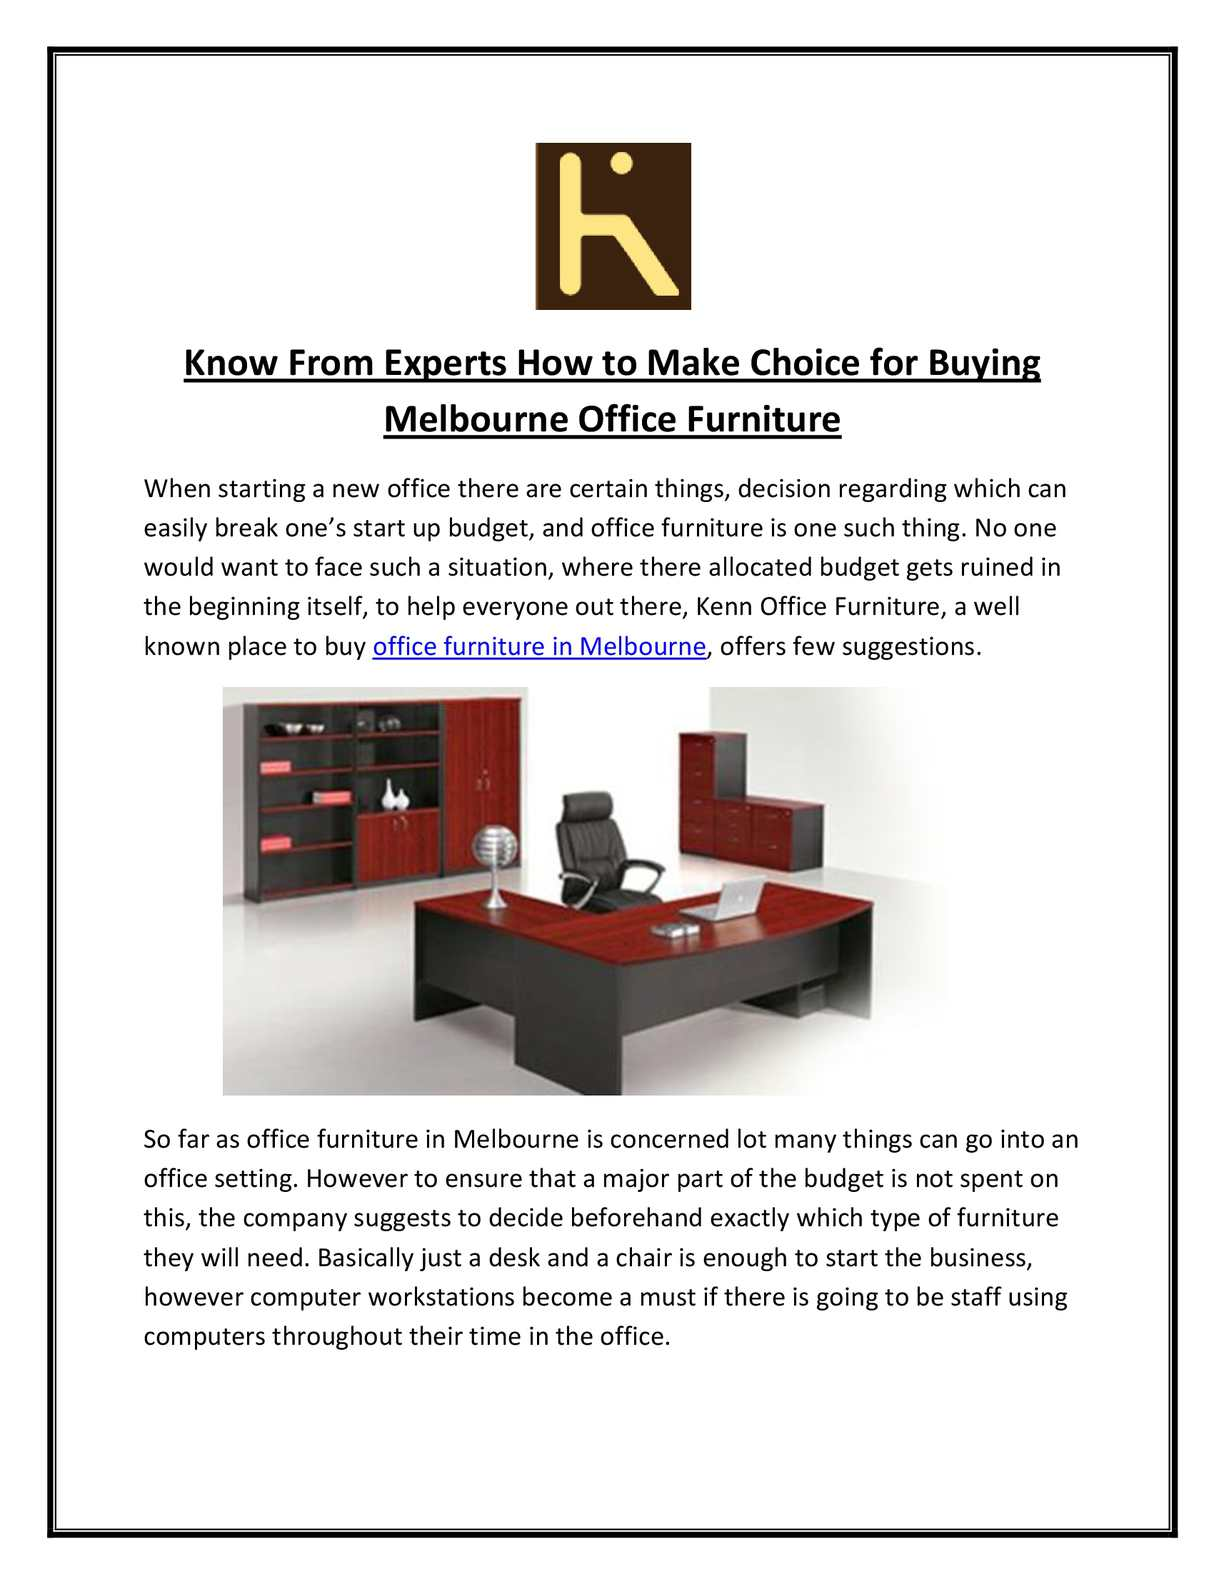 Used Office Furniture Melbourne Calaméo Kenn Office Furniture Guides To Decide Which Office